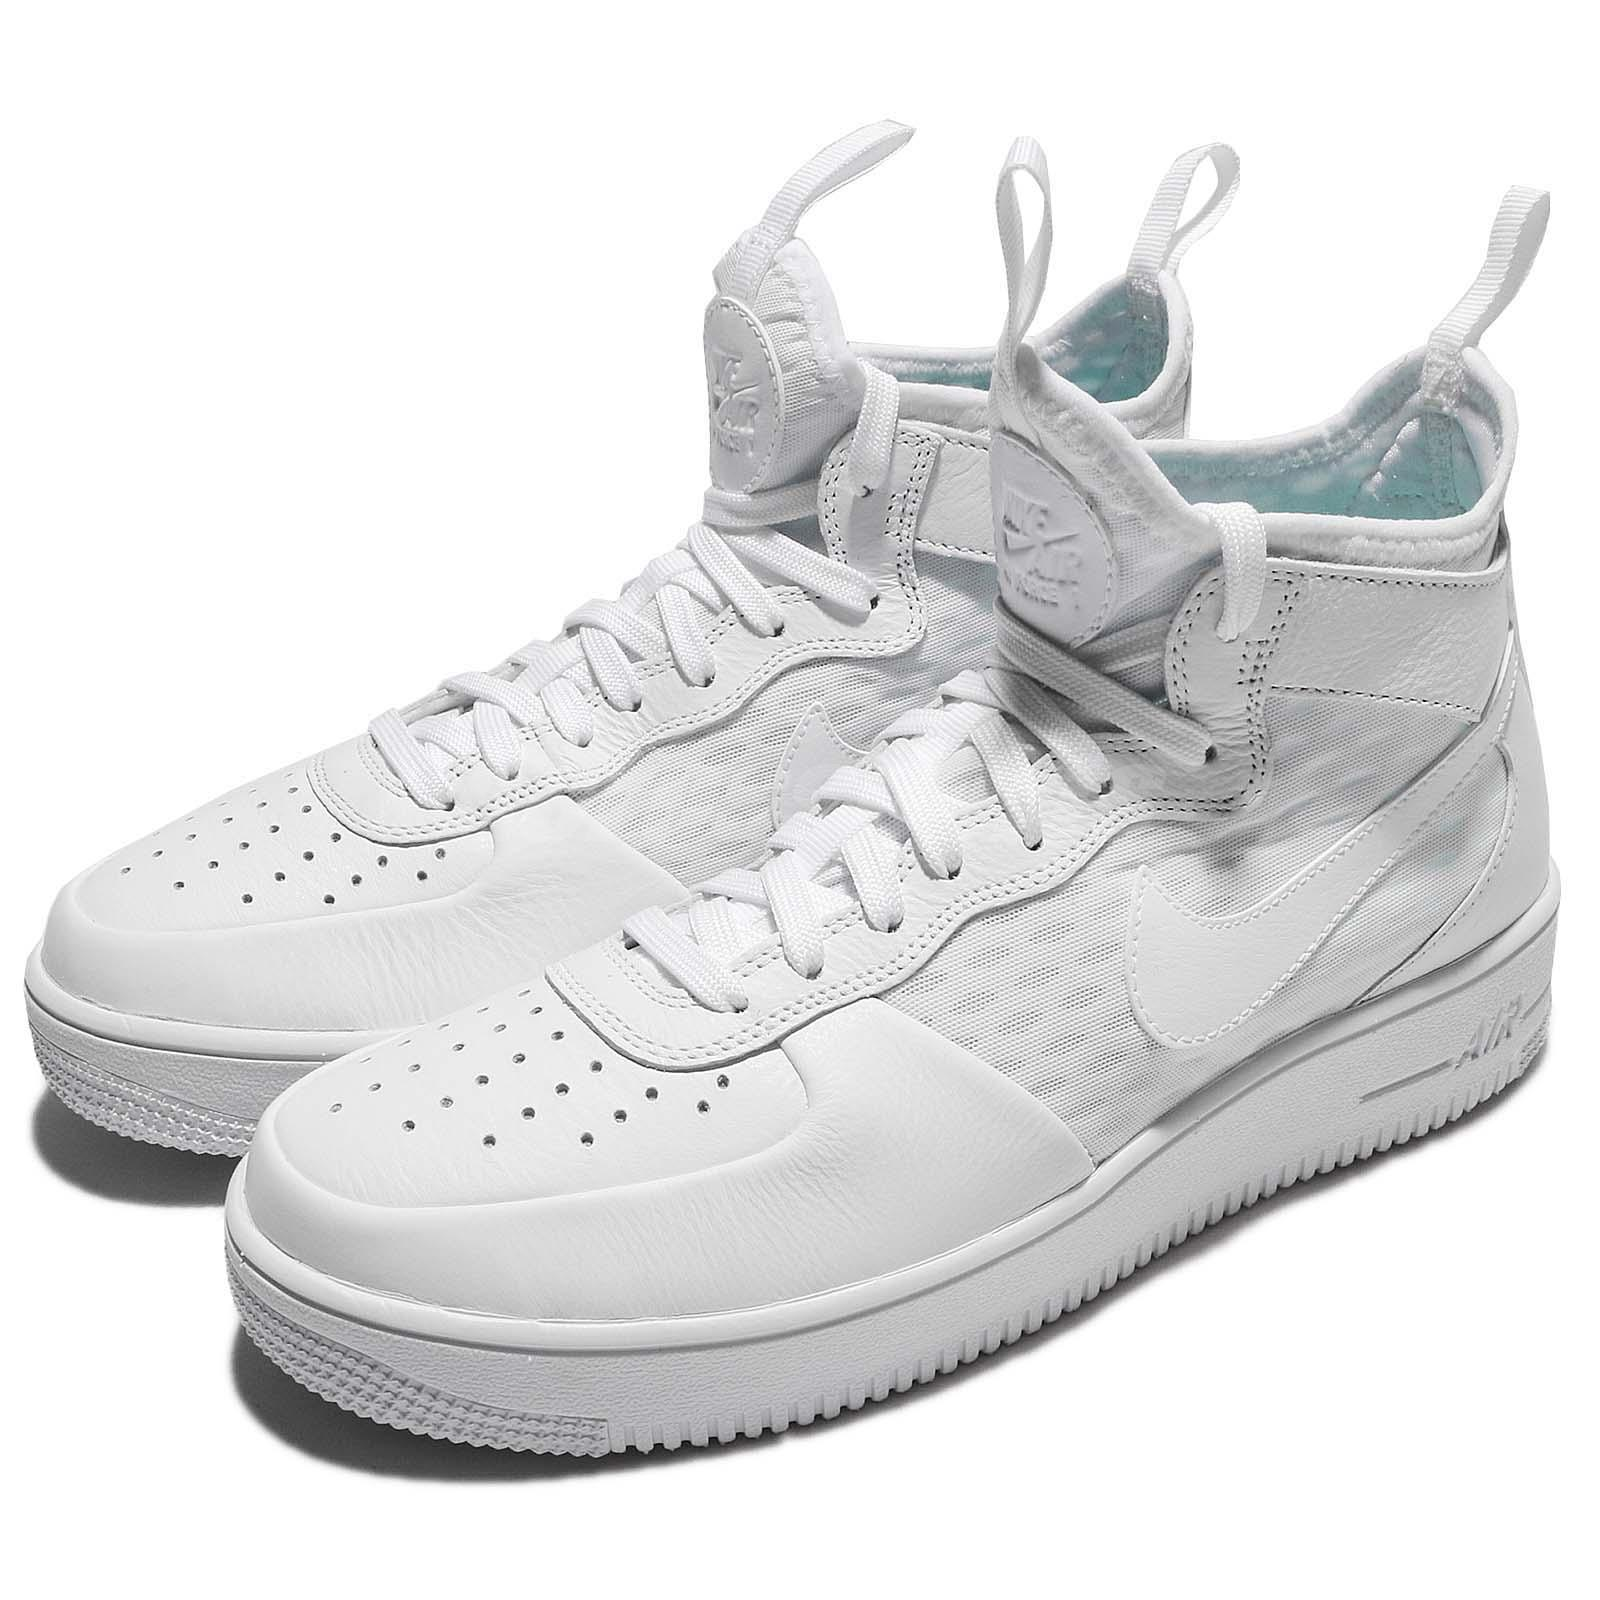 353f75150 Details about Nike Air Force 1 Ultraforce Mid Triple White AF1 Men Shoes  Sneakers 864014-100